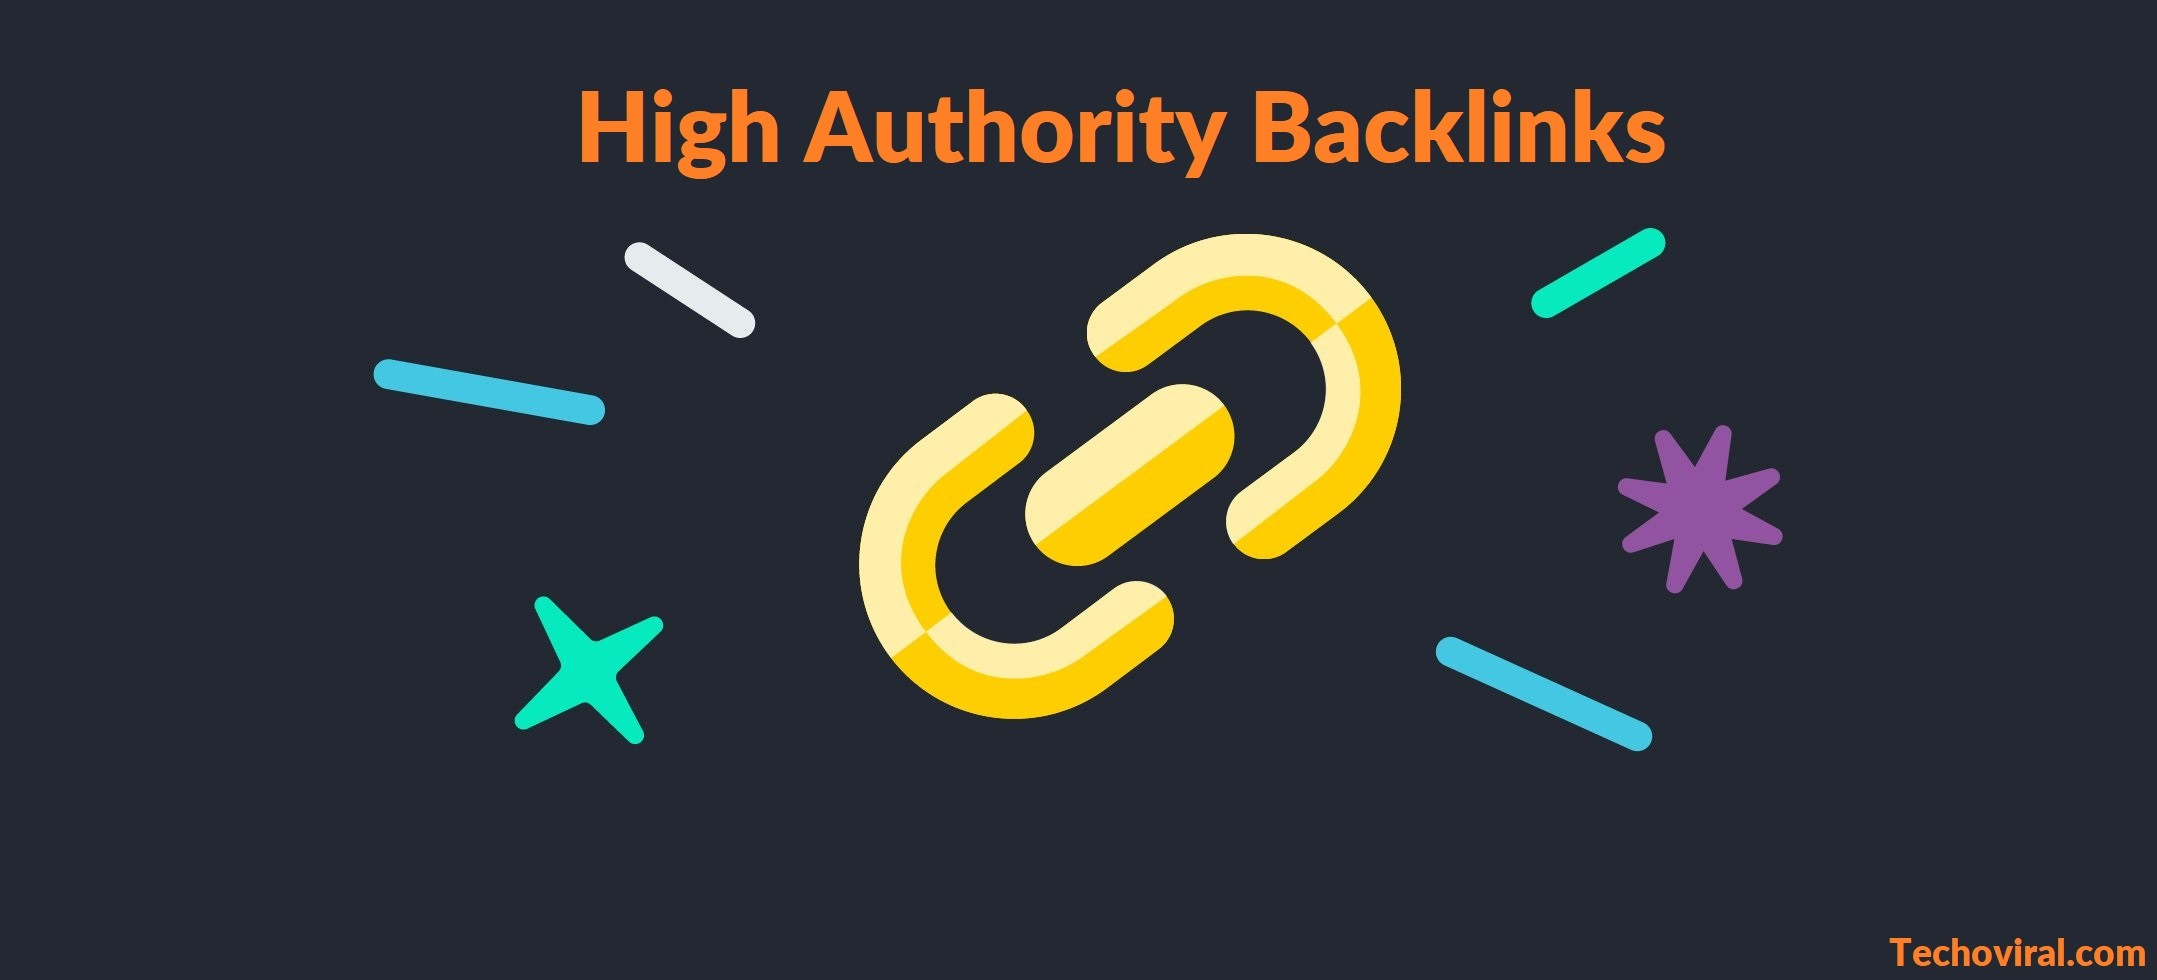 I will provide high-quality backlinks for your website